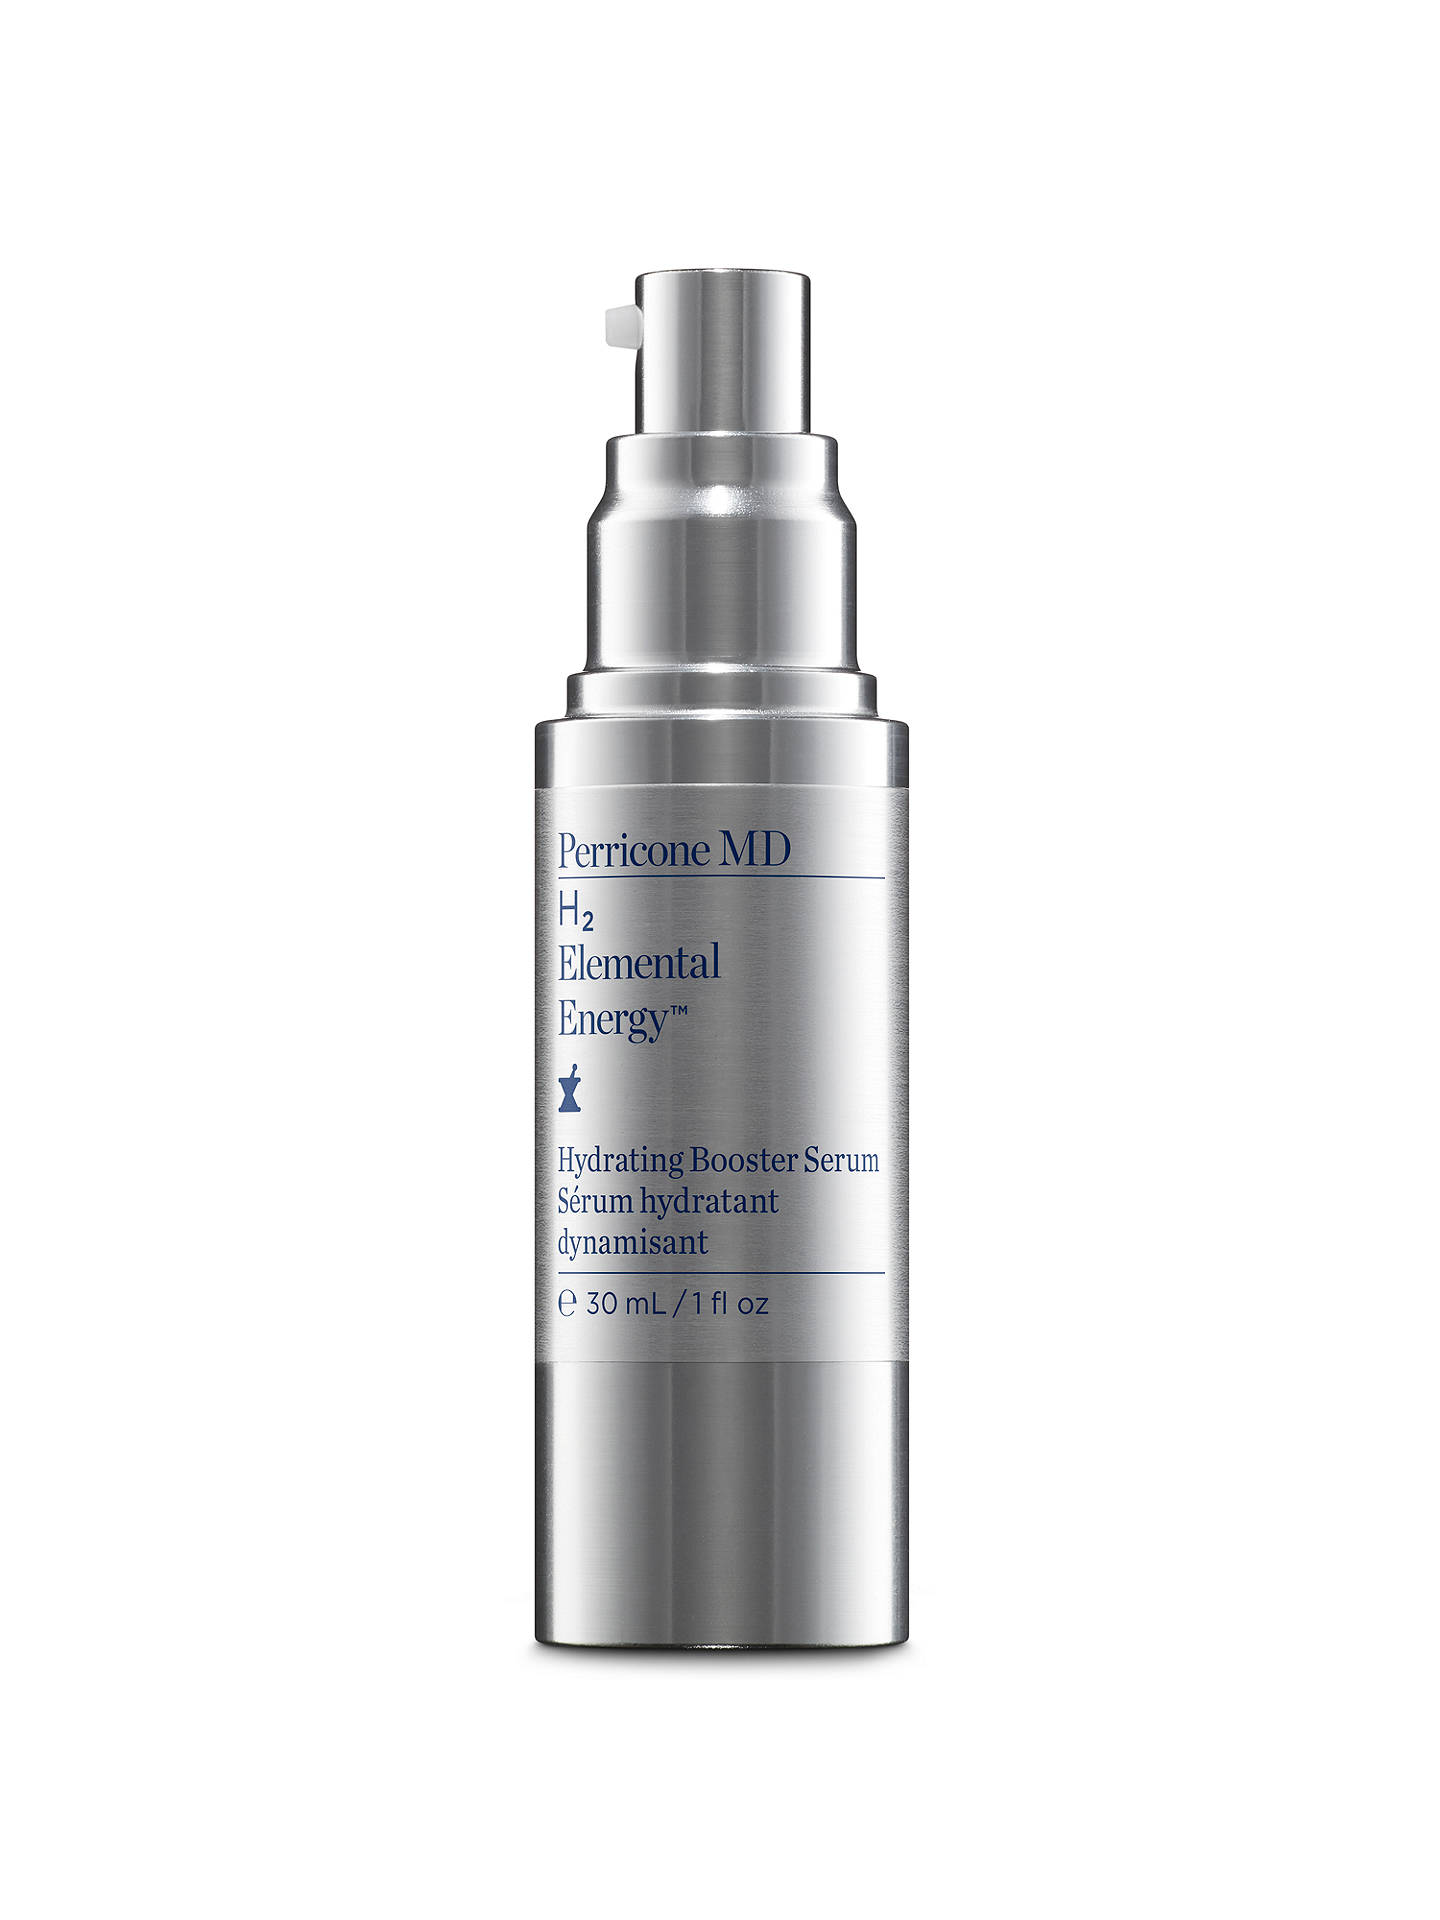 BuyPerricone MD H2 Elemental Energy Hydrating Booster Serum, 30ml Online at johnlewis.com